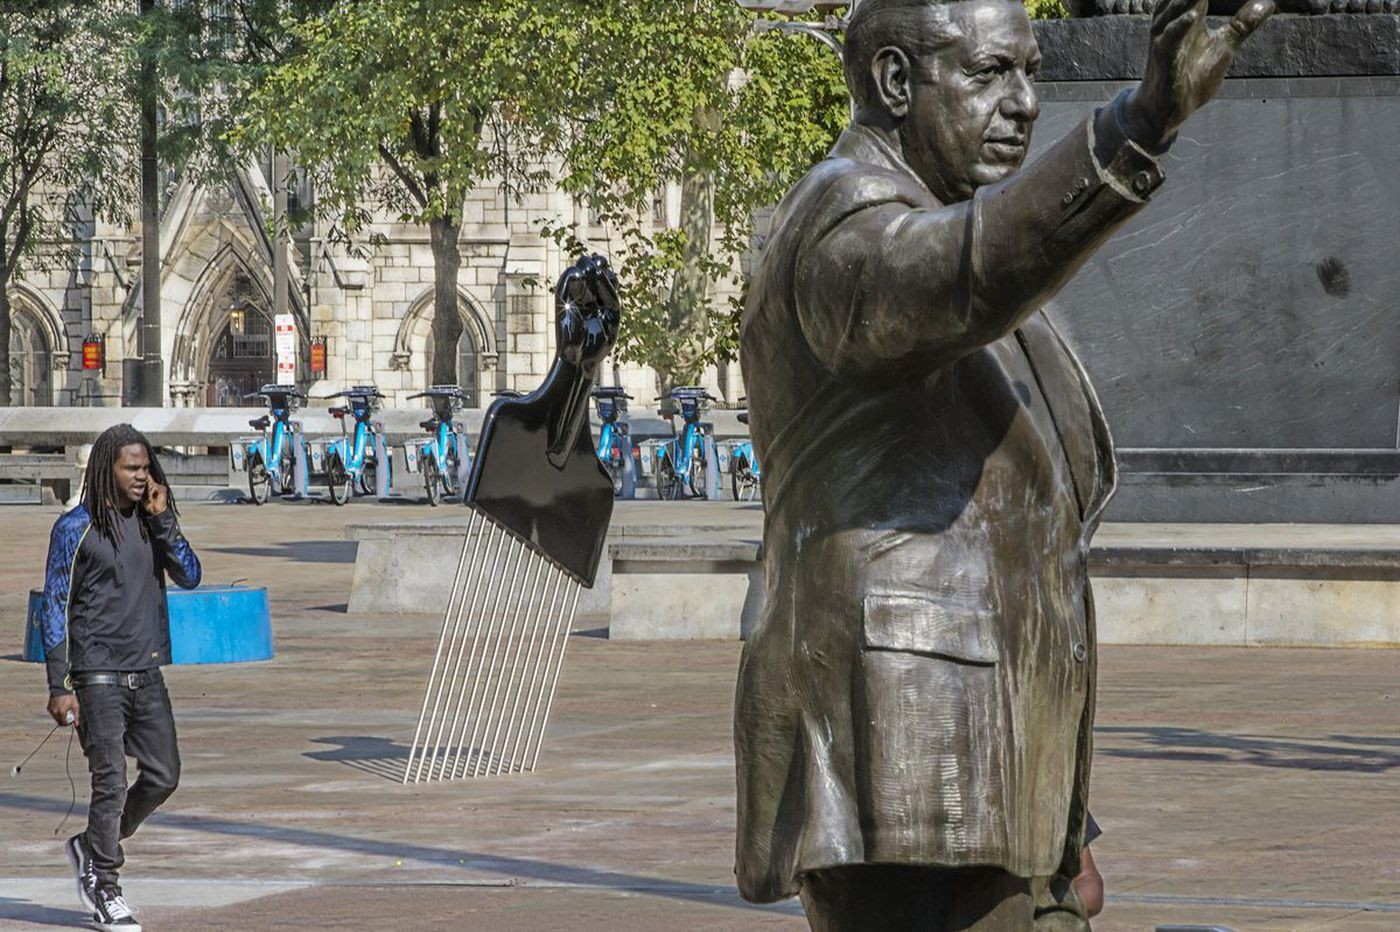 Afro-pick sculpture behind Rizzo statue is anything but empowering